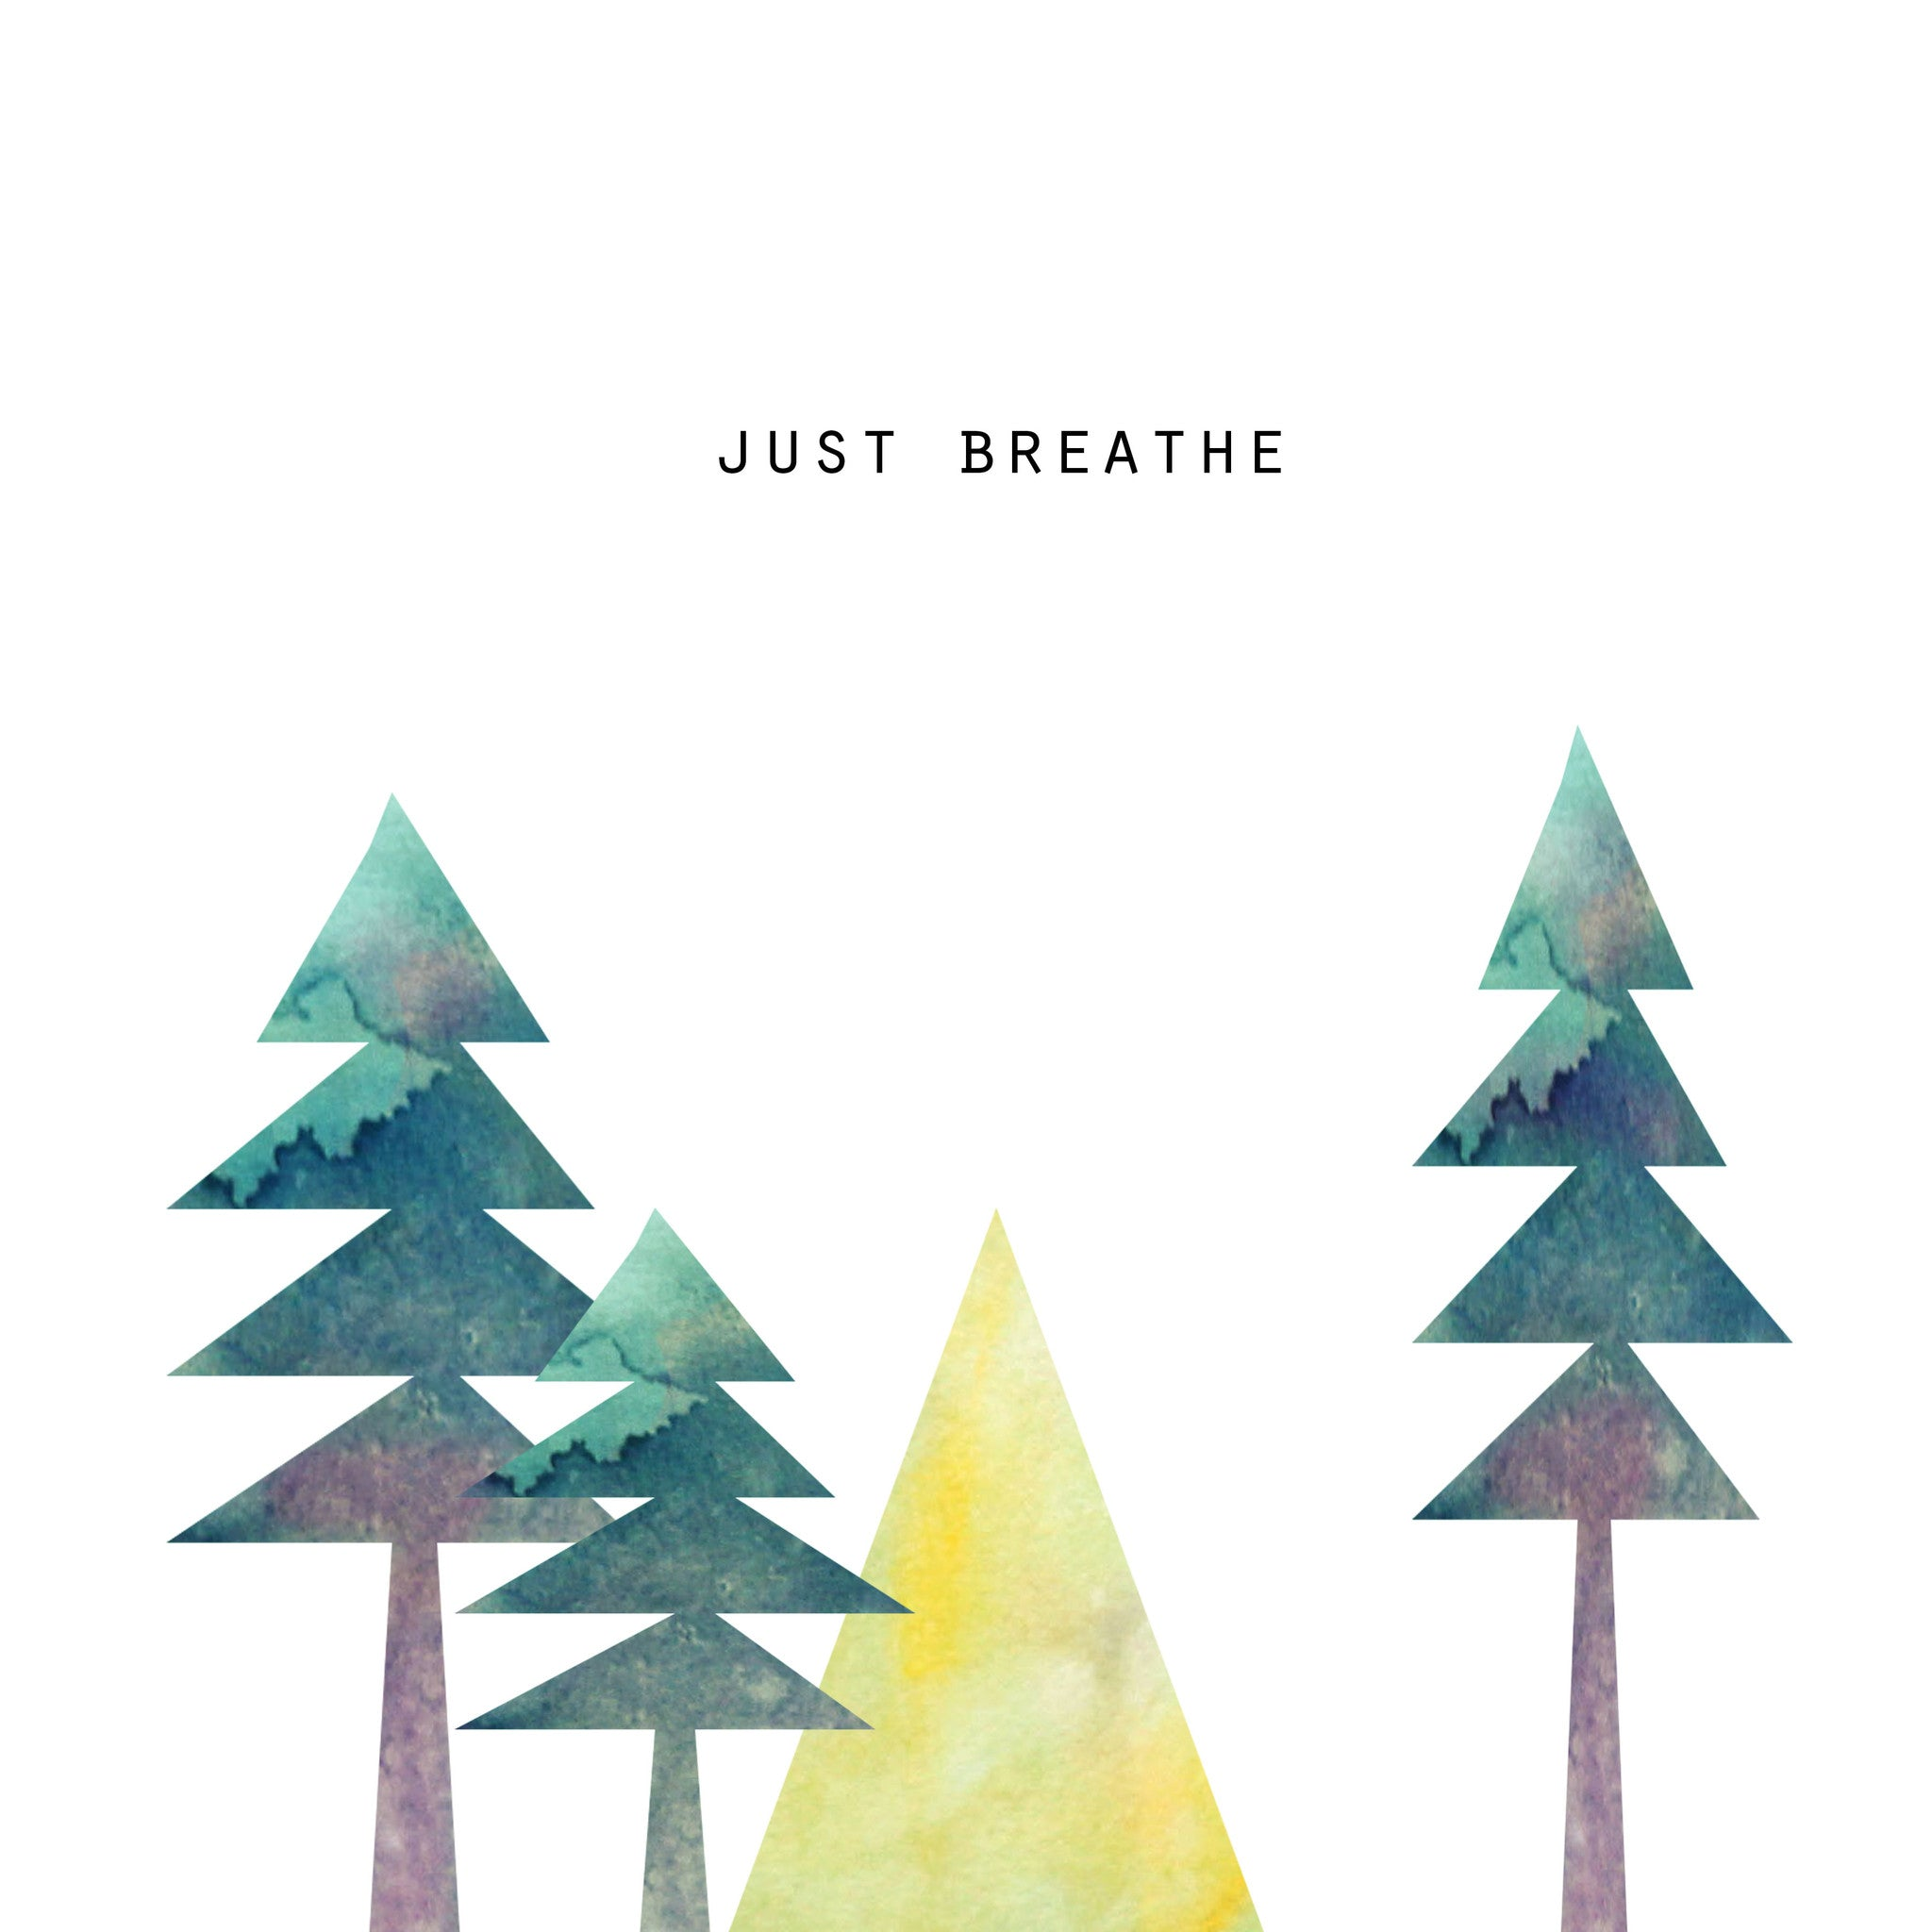 Just Breathe Square Print